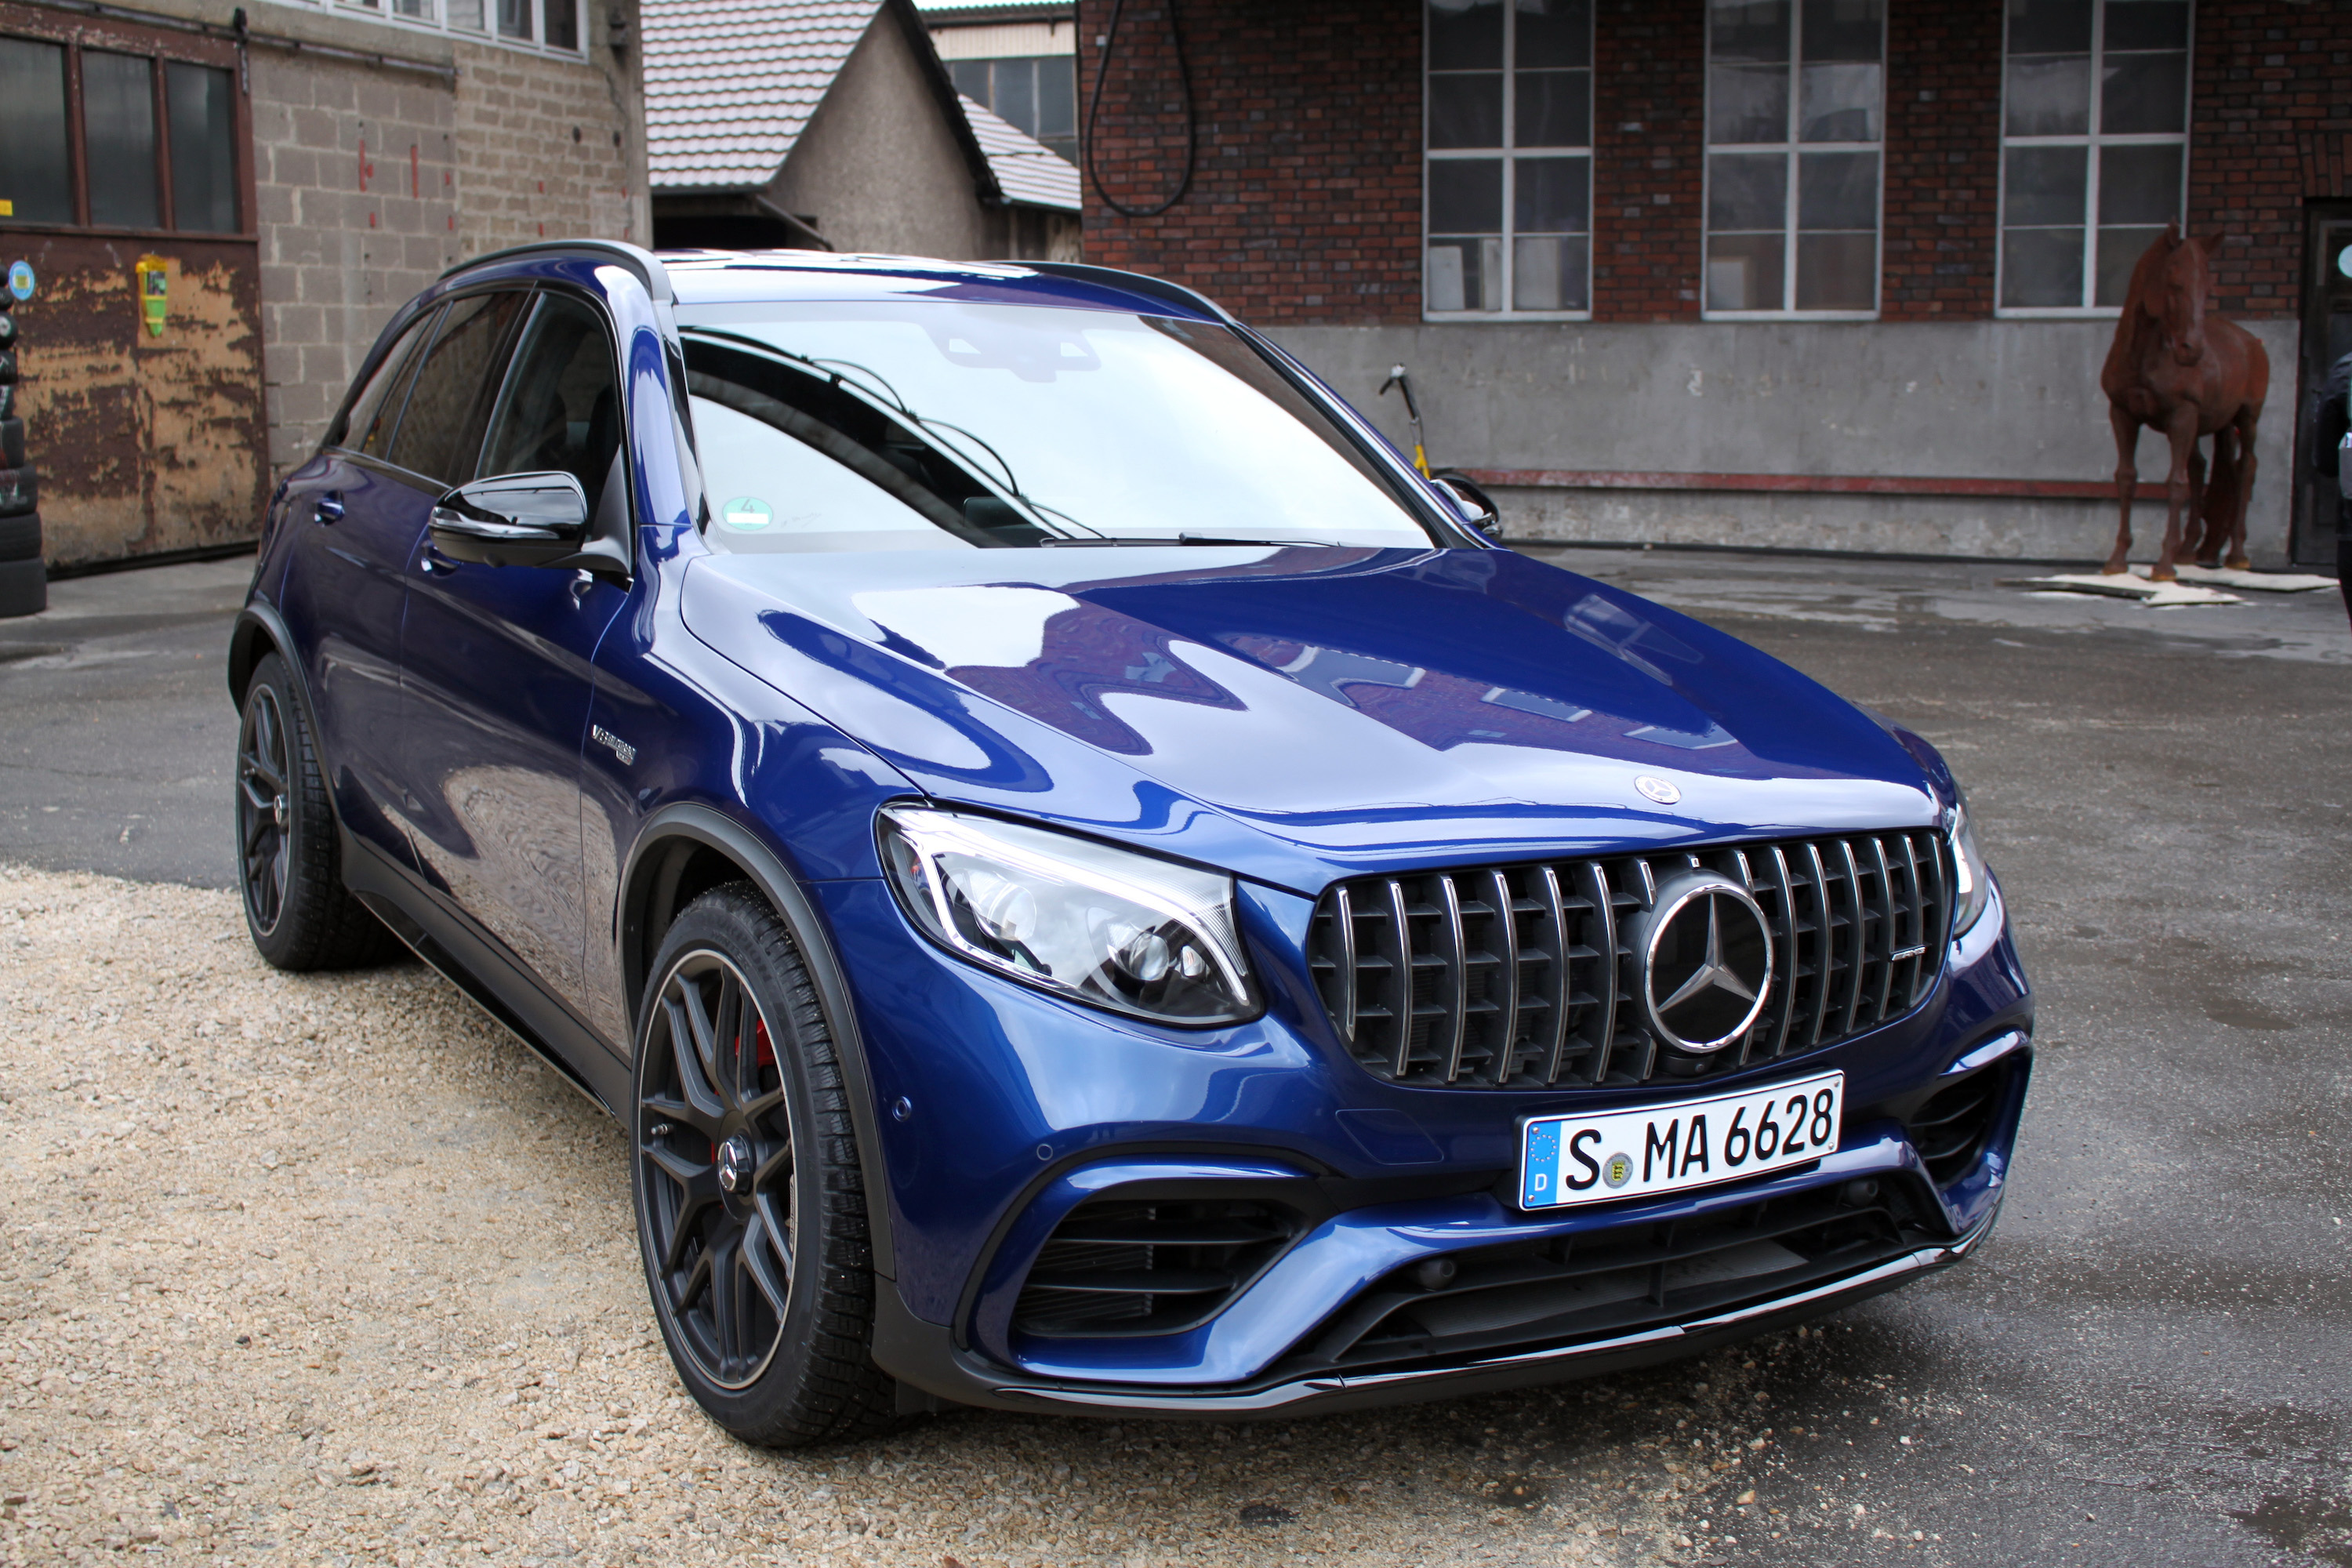 http://www.autoguide.com/blog/wp-content/gallery/2018-mercedes-amg-glc-63-s-4matic-review/2018-Mercedes-AMG-GLC-63-S-4MATIC-Review-SHA-22.JPG